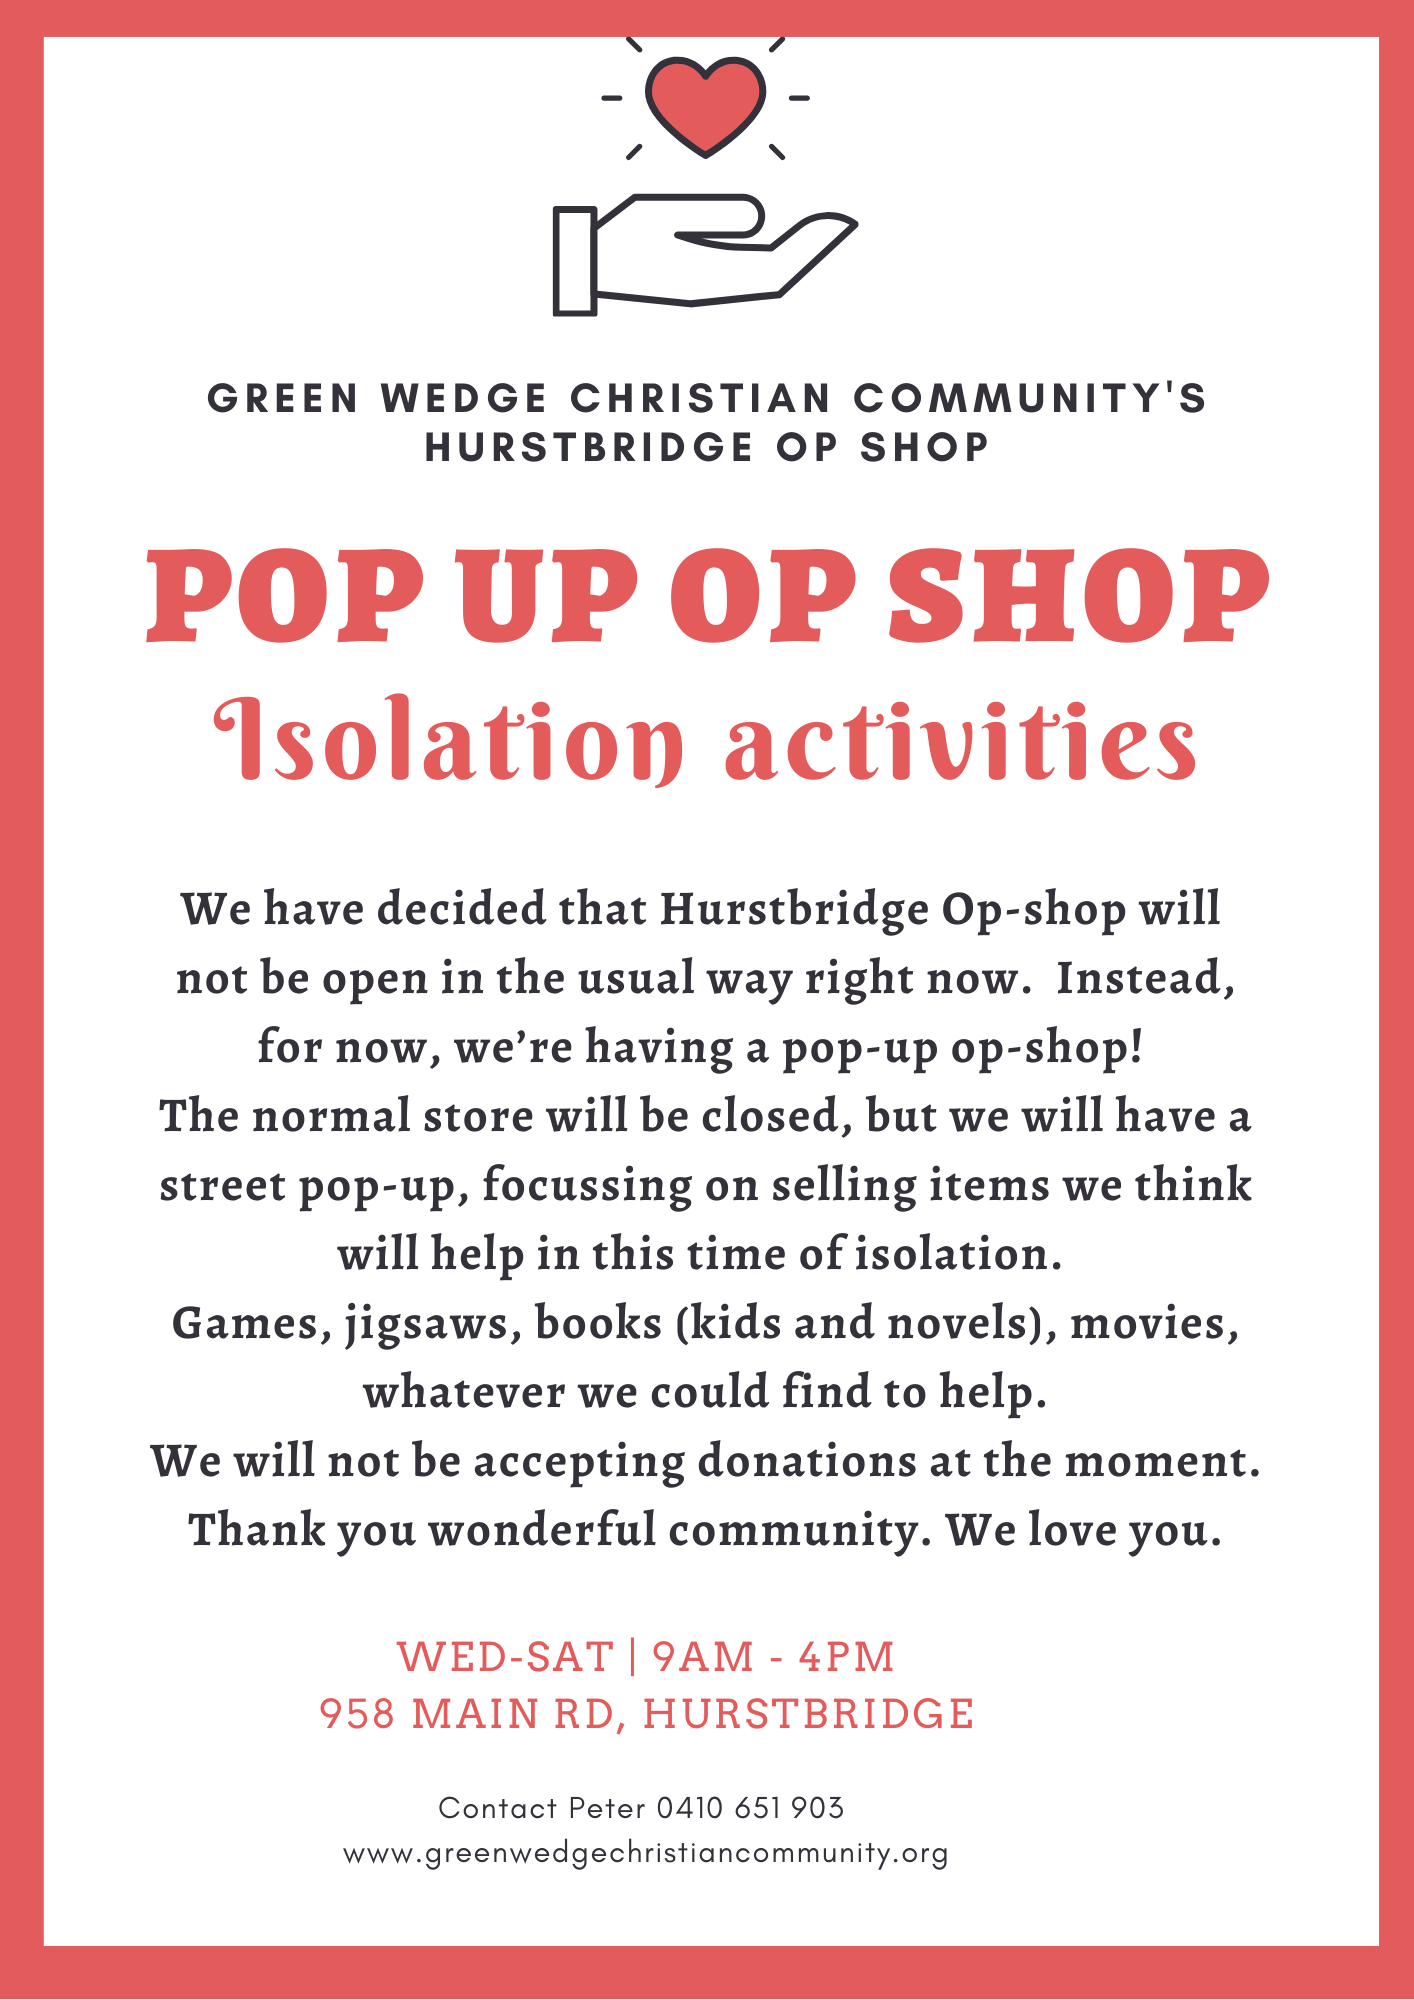 Pop-up Op-Shop